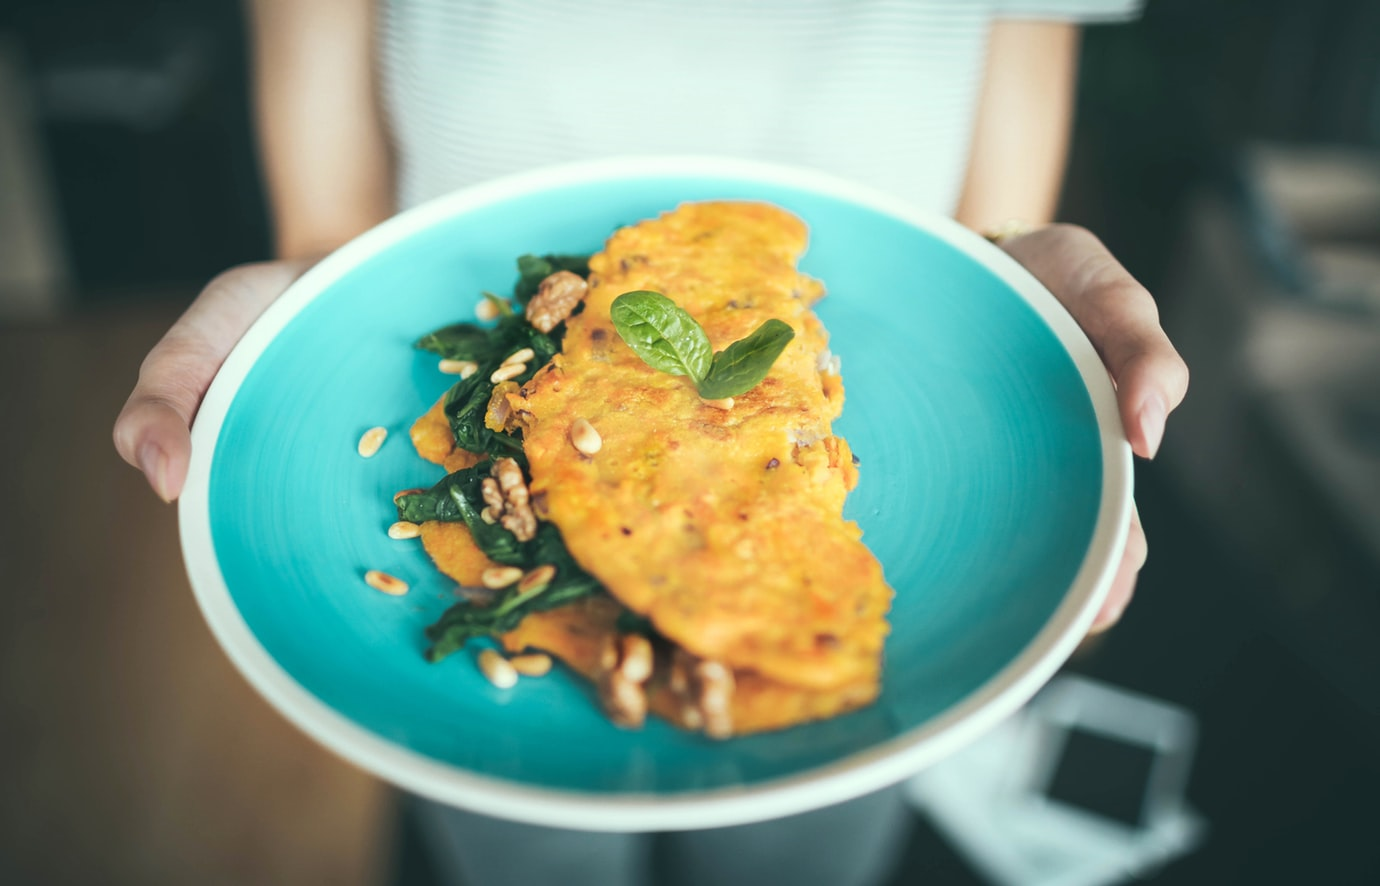 10 Best Omelette Makers to Buy in 2019 4